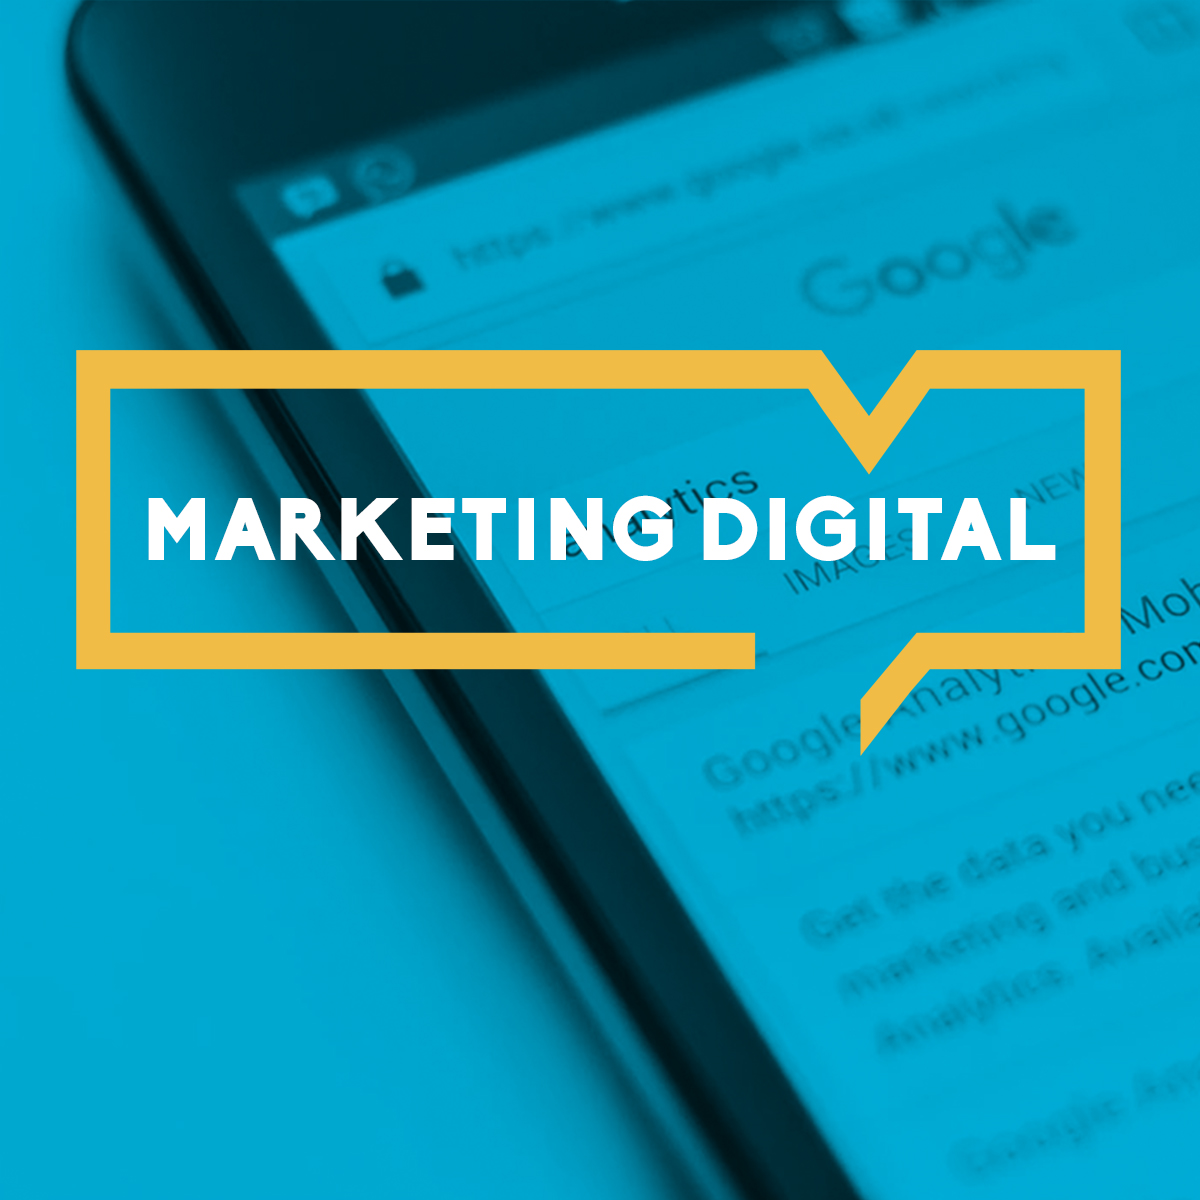 Agencia-Marketing-digital-microlimano